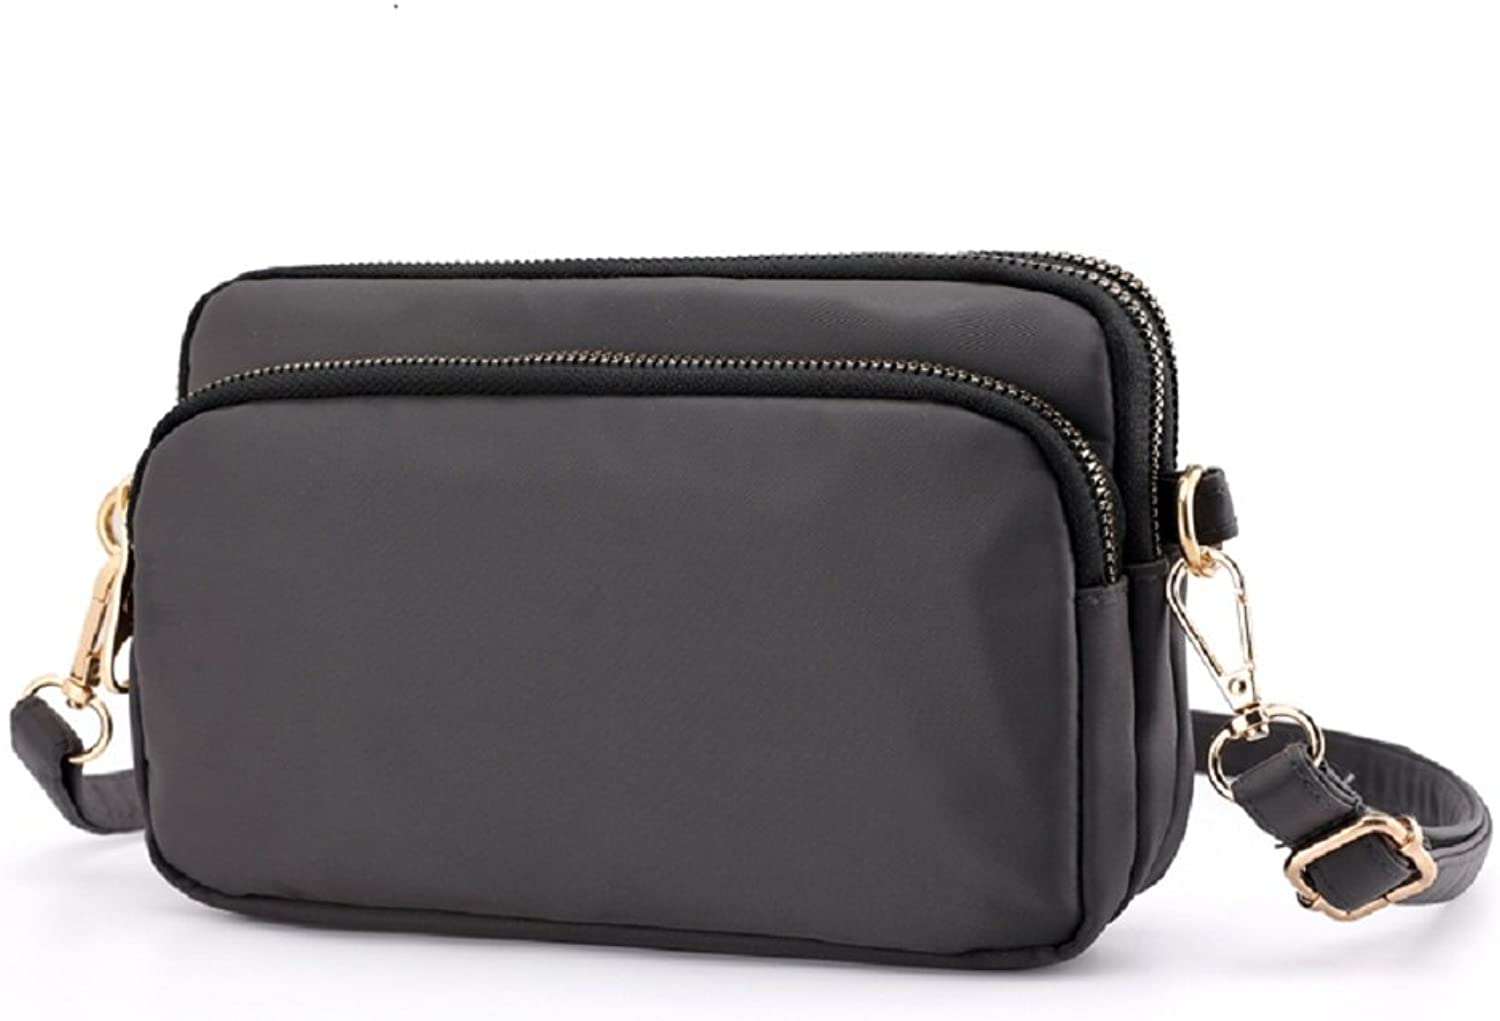 Small Crossbody Shoulder Bag Waterproof Nylon Strap Cell Phone Wallets Travel Purse For Women